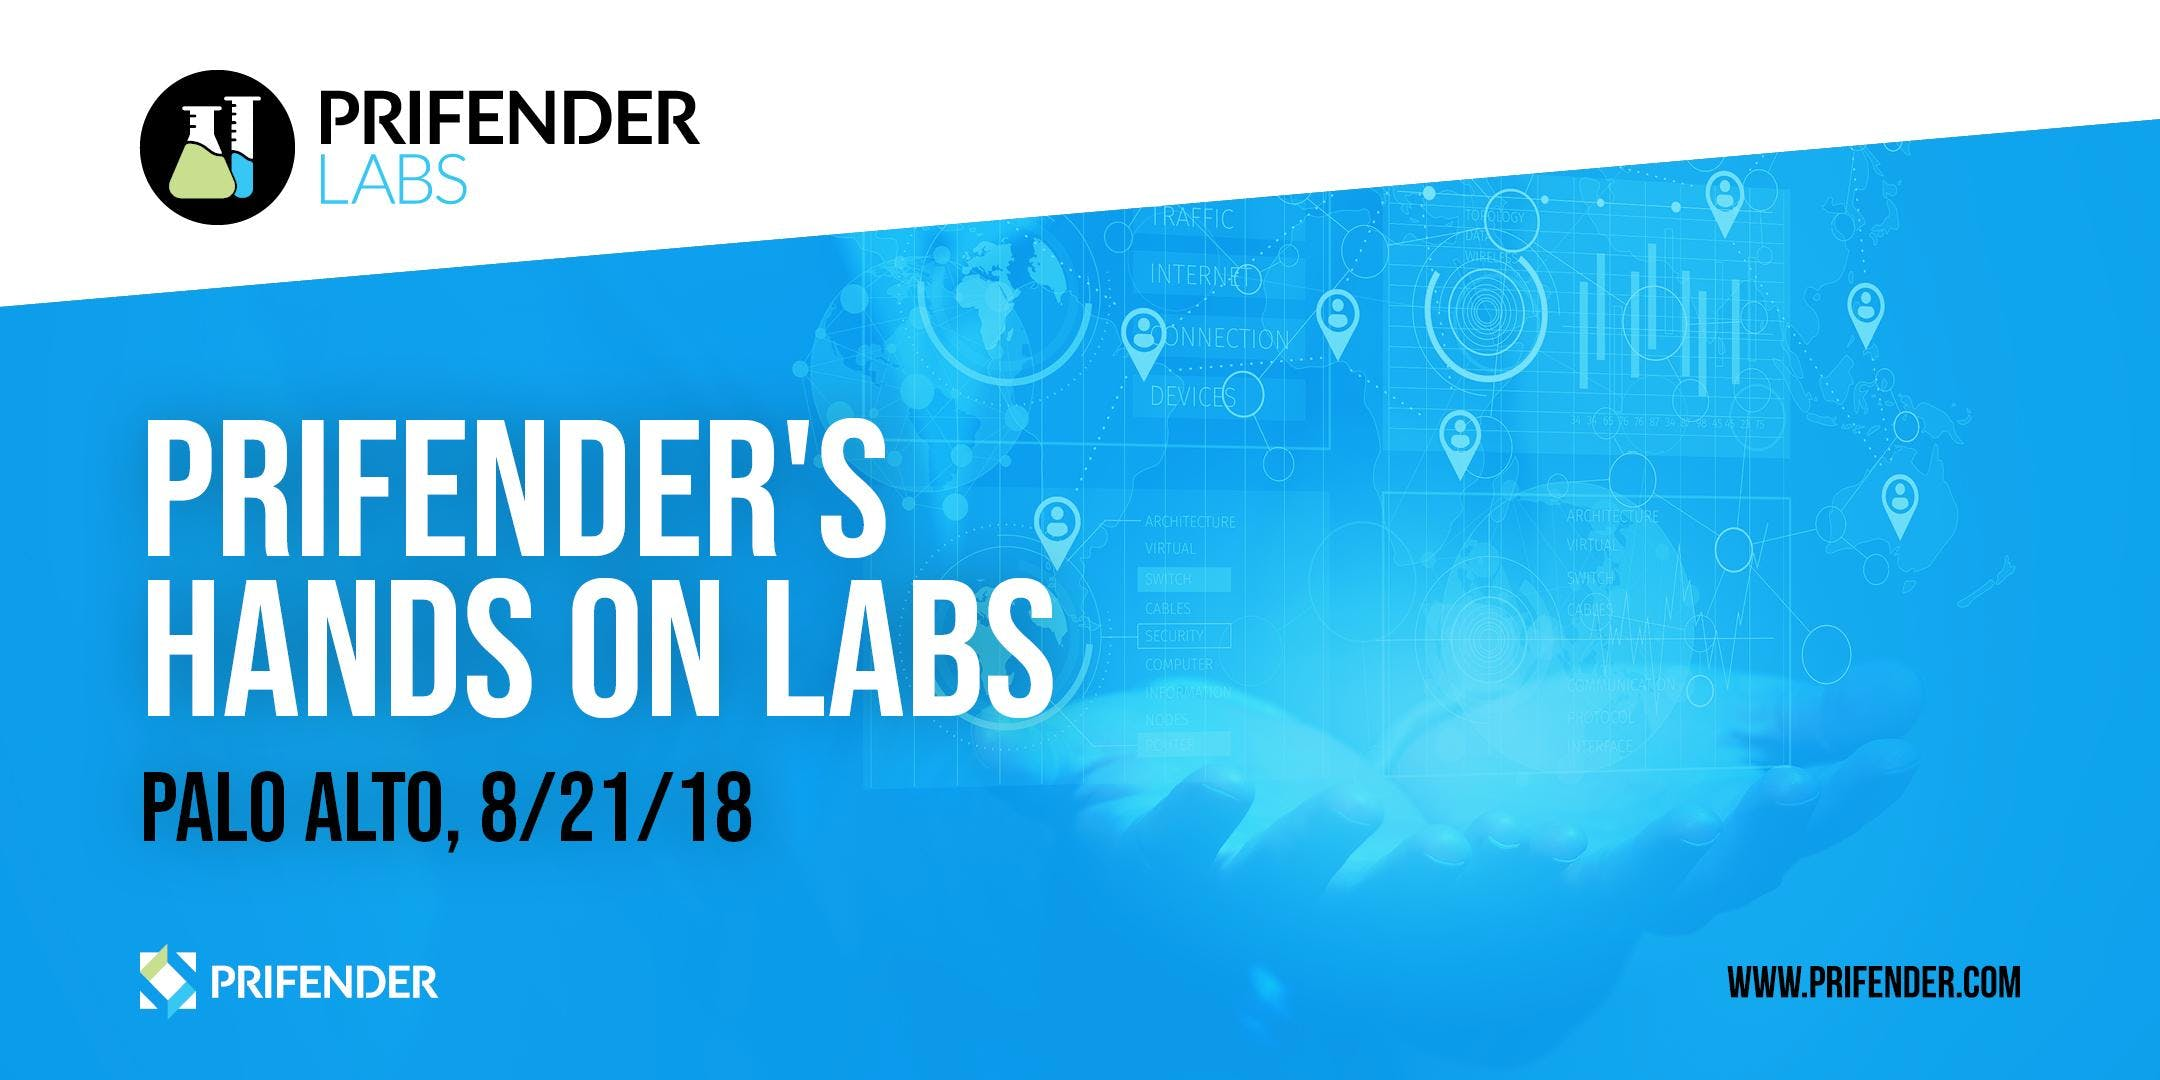 Prifender`s Hands on Labs - Palo Alto